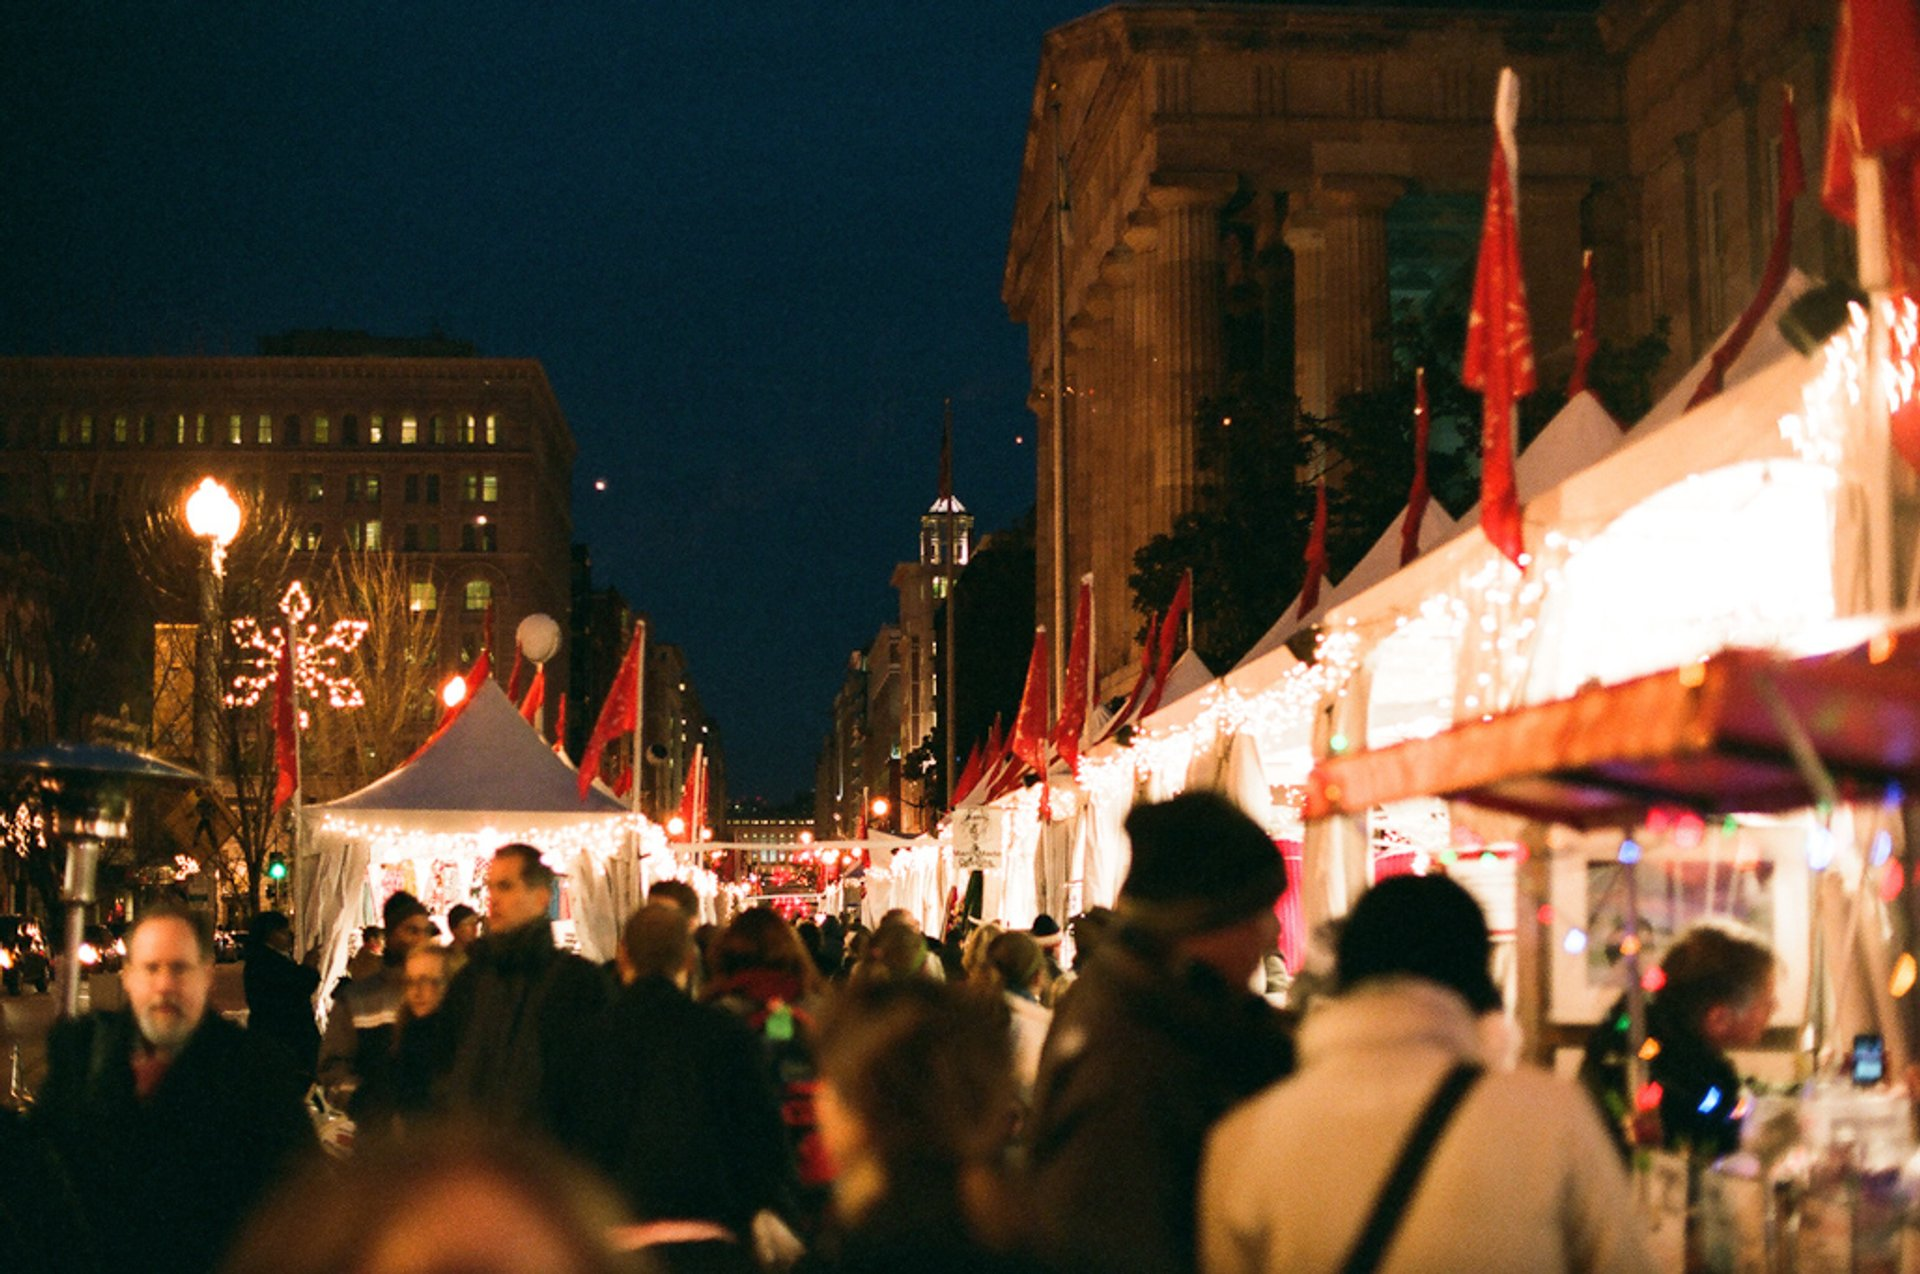 Downtown Holiday Market in Washington, D.C. 2019 - Best Time